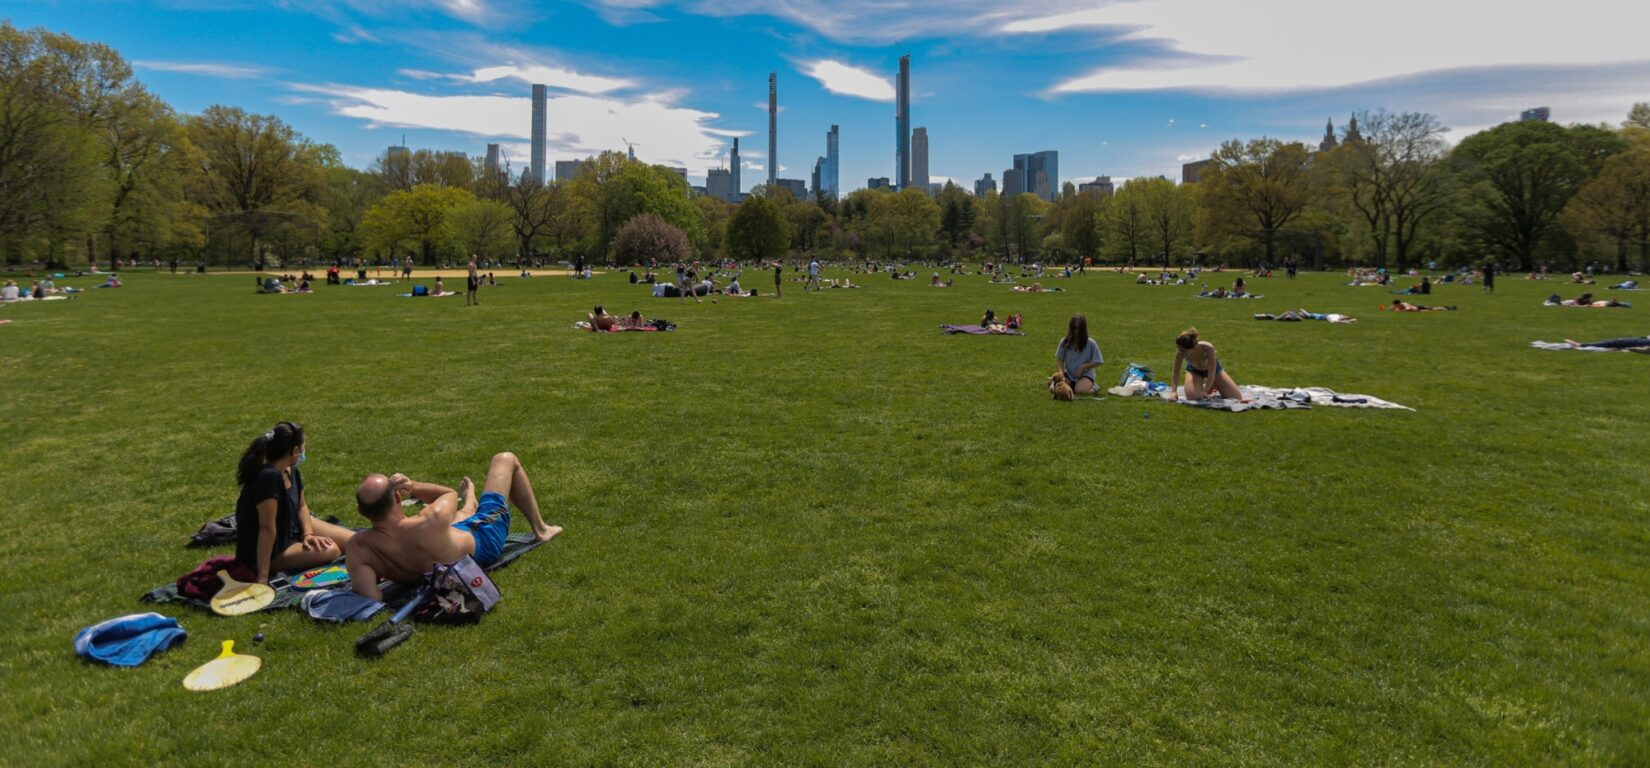 A sweeping view of the great lawn in early autumn, with the skyline of 57th Street in the background